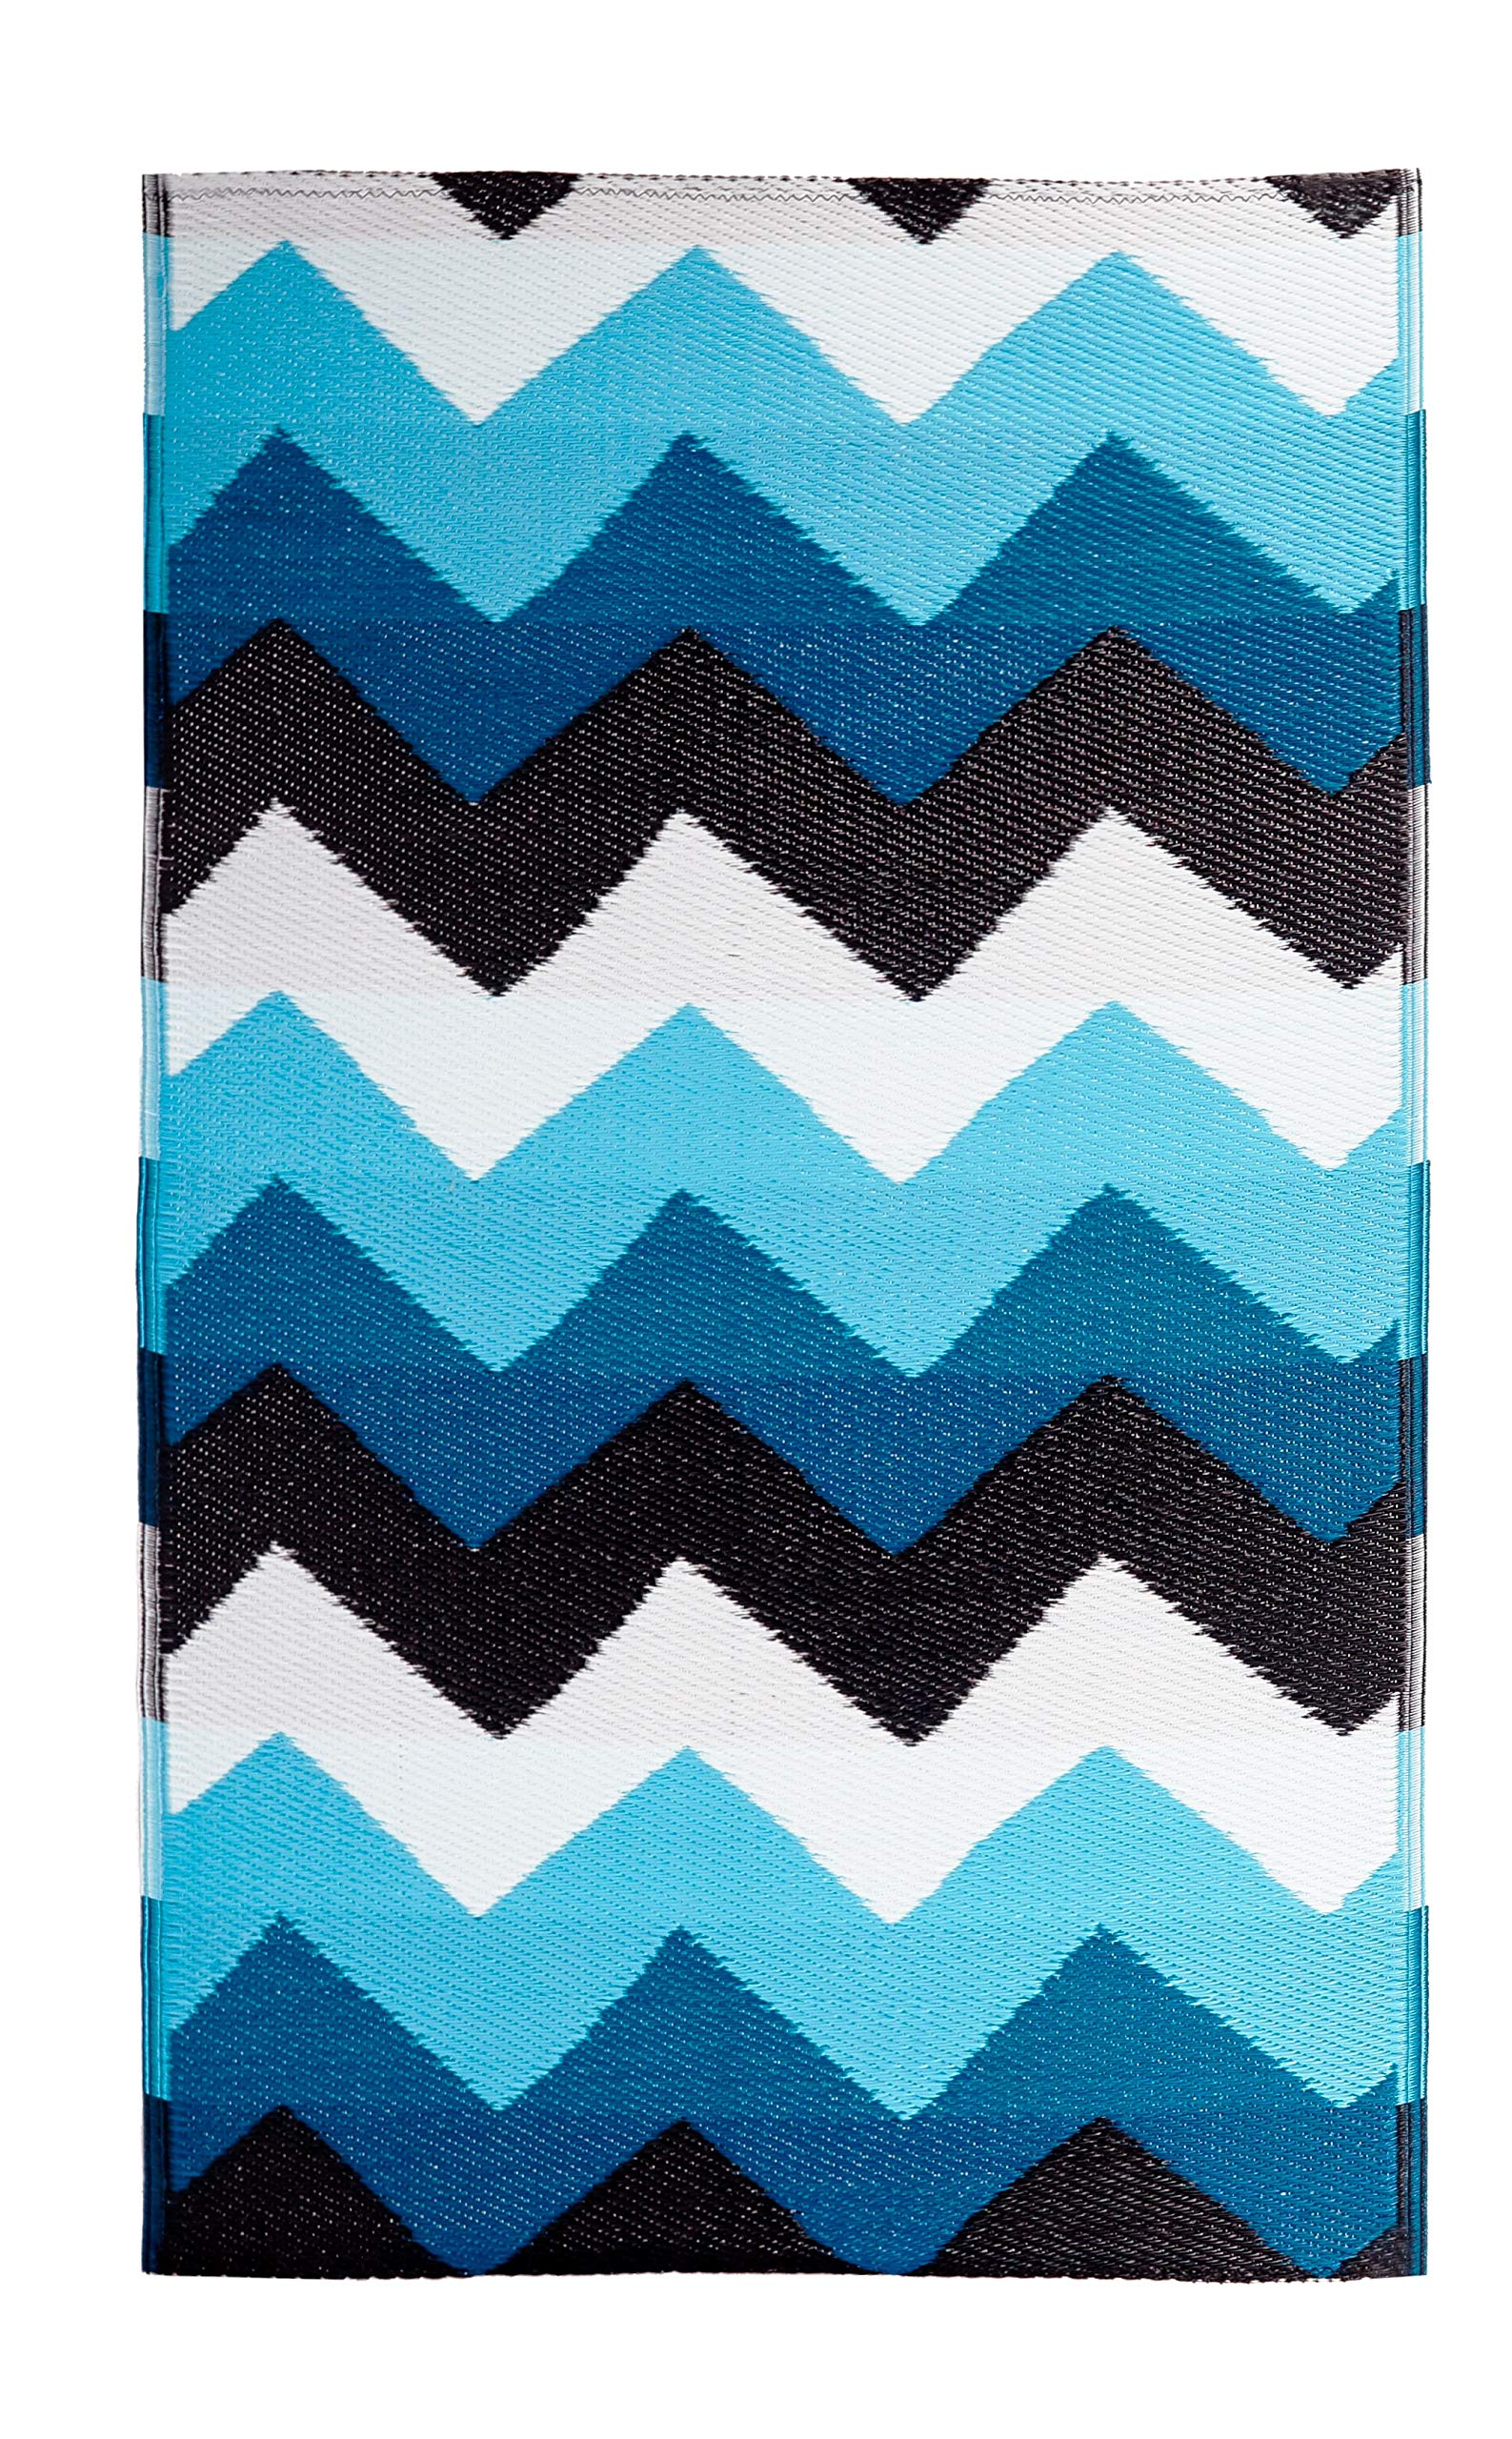 BEOMES, Indoor/Outdoor Rug, All Weather & UV Resistant (3 X 5, Stockholm-Blue)